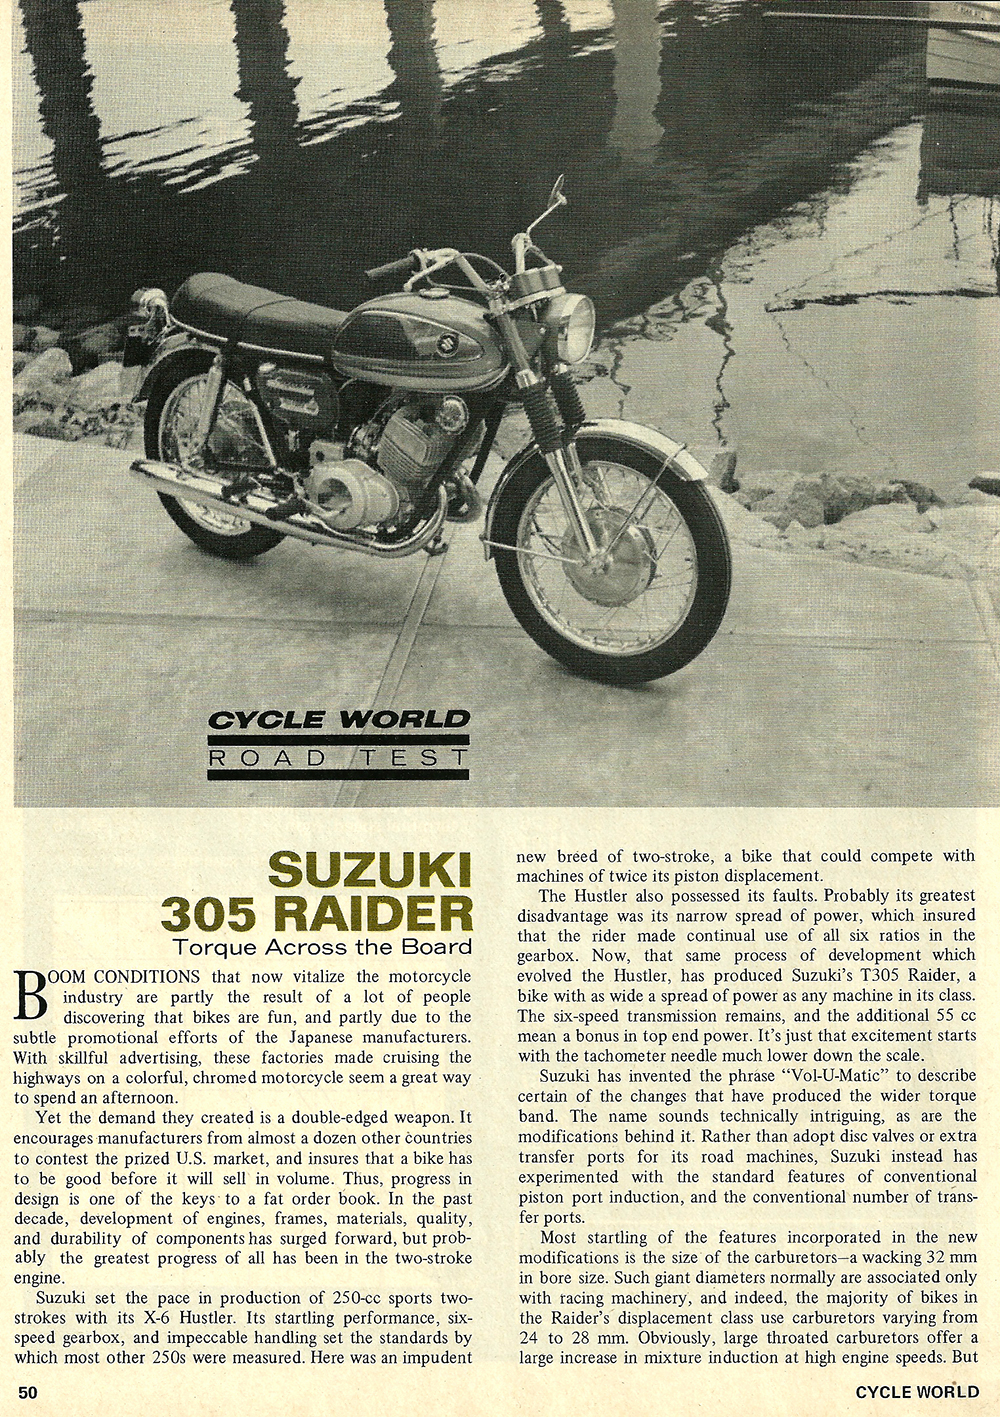 1968 Suzuki 305 Raider road test 01.jpg